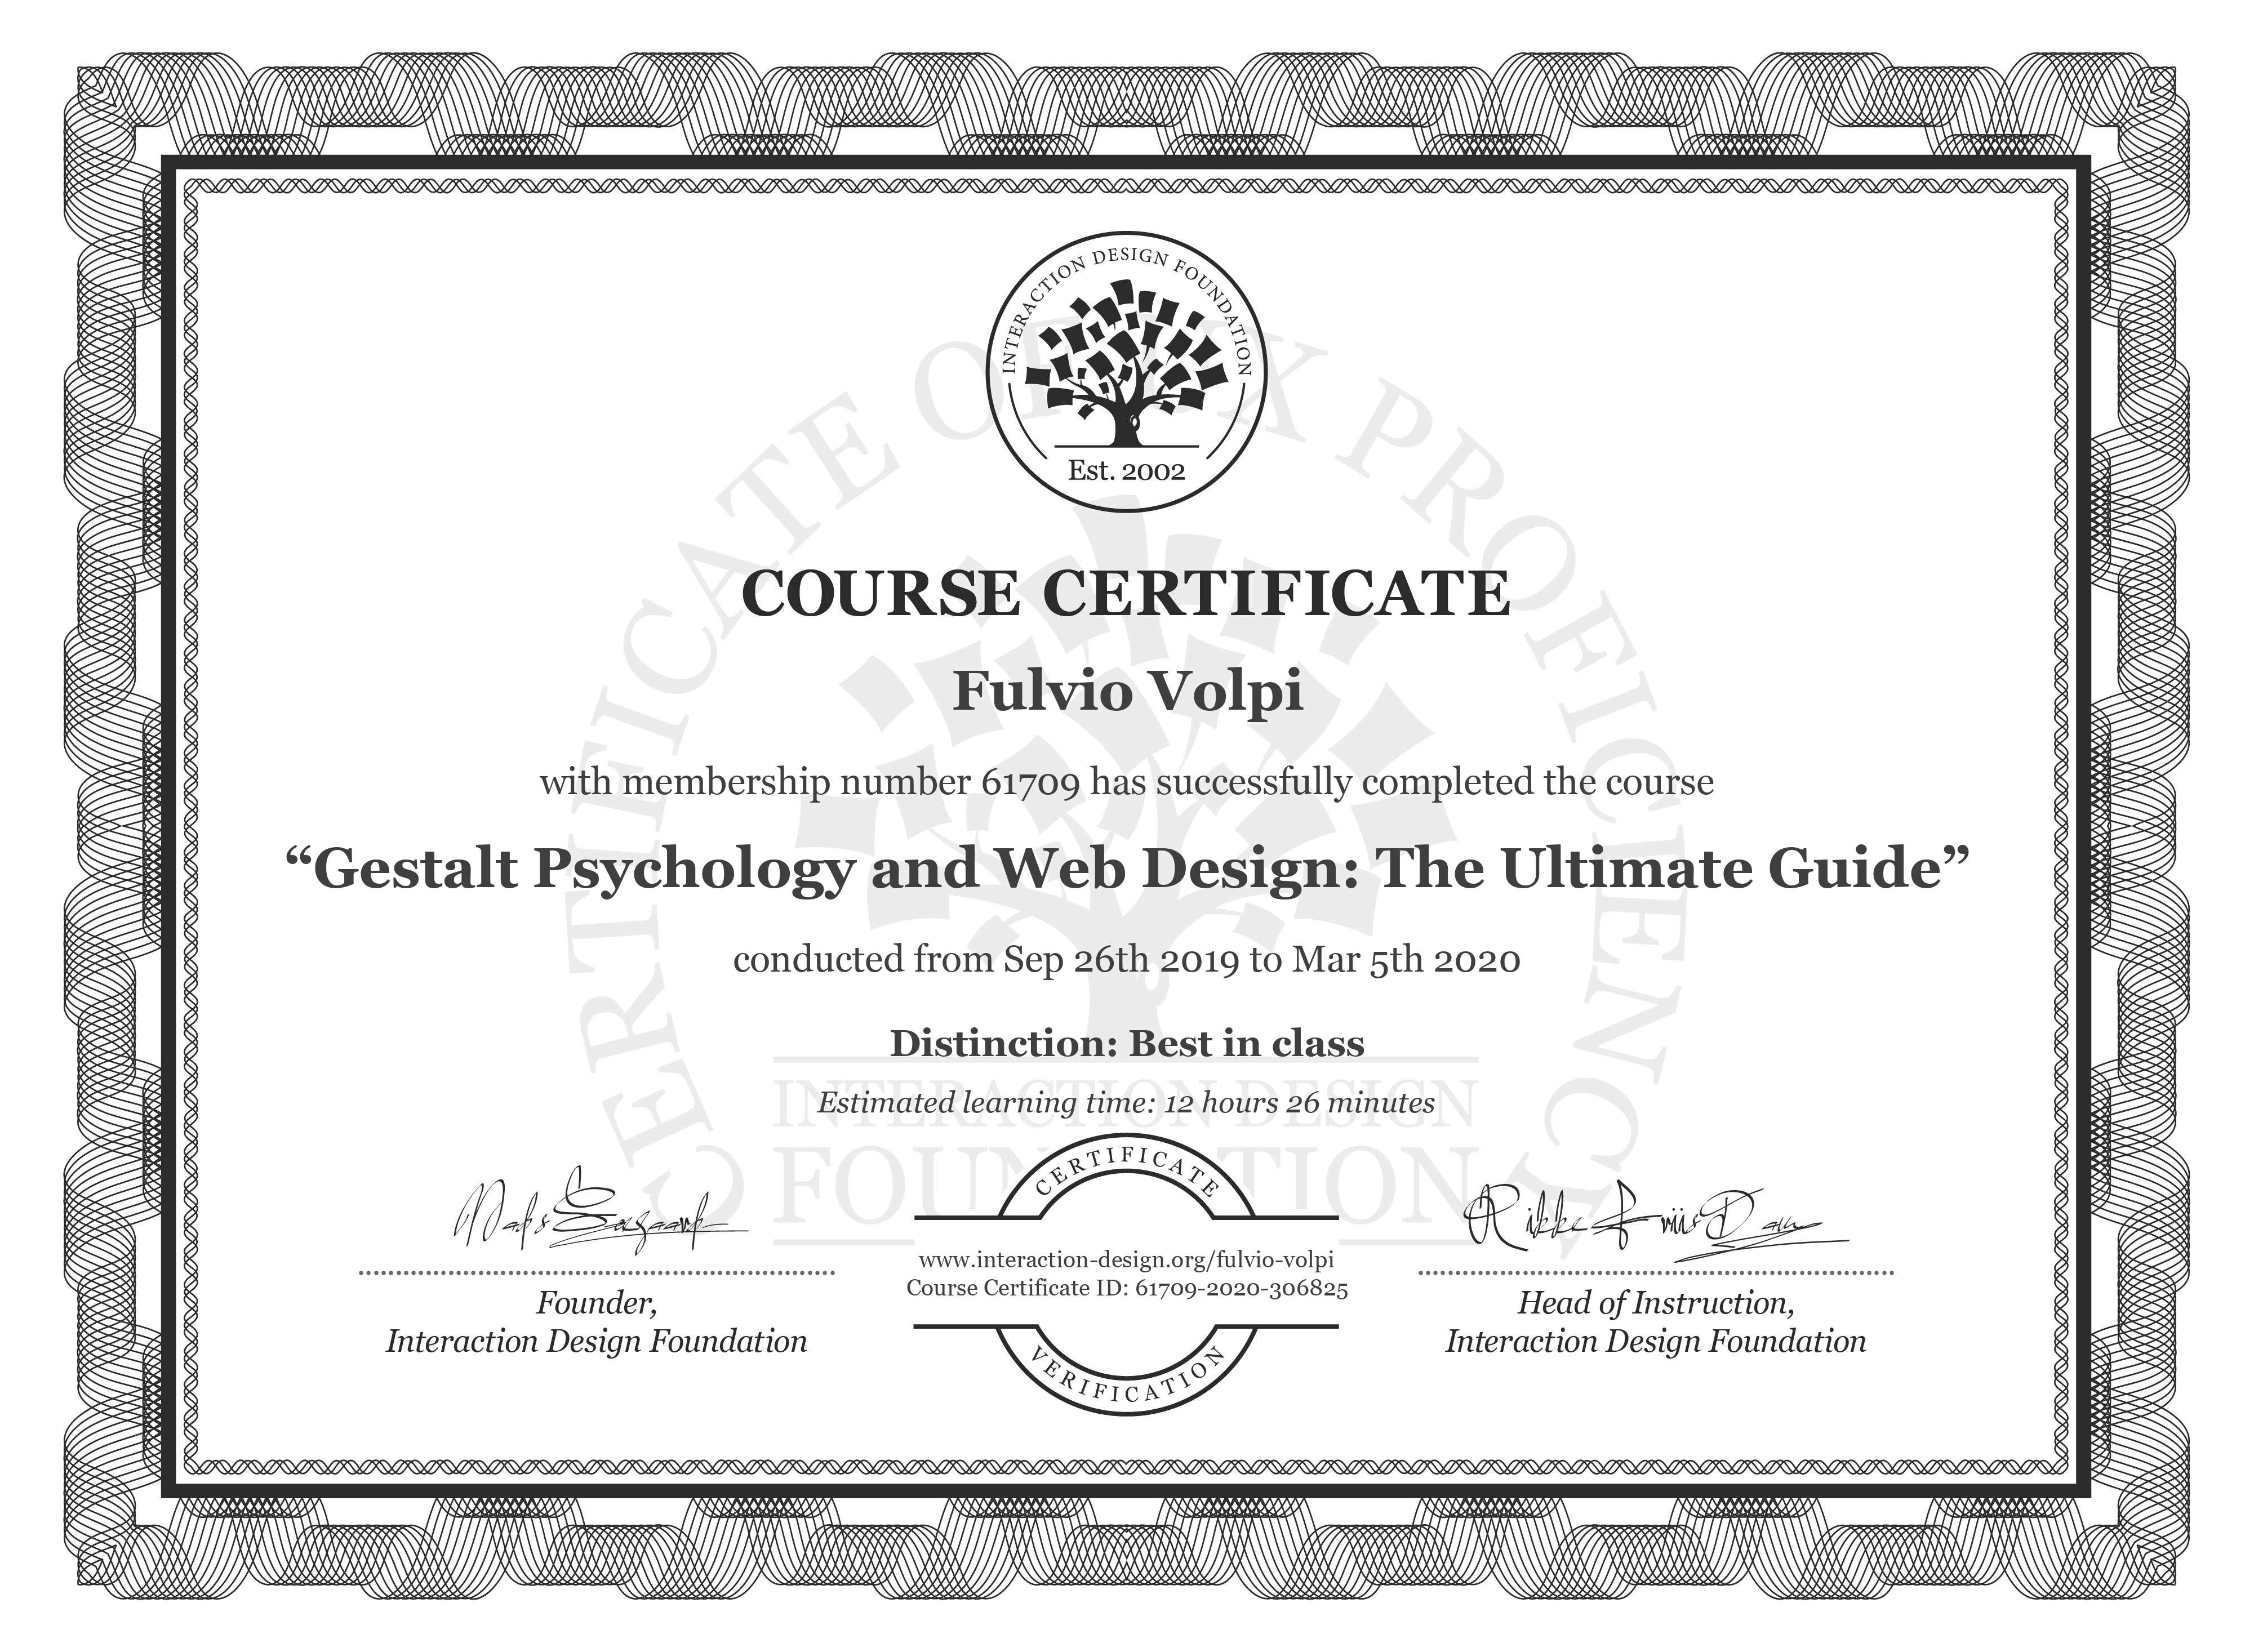 Fulvio Volpi's Course Certificate: Gestalt Psychology and Web Design: The Ultimate Guide